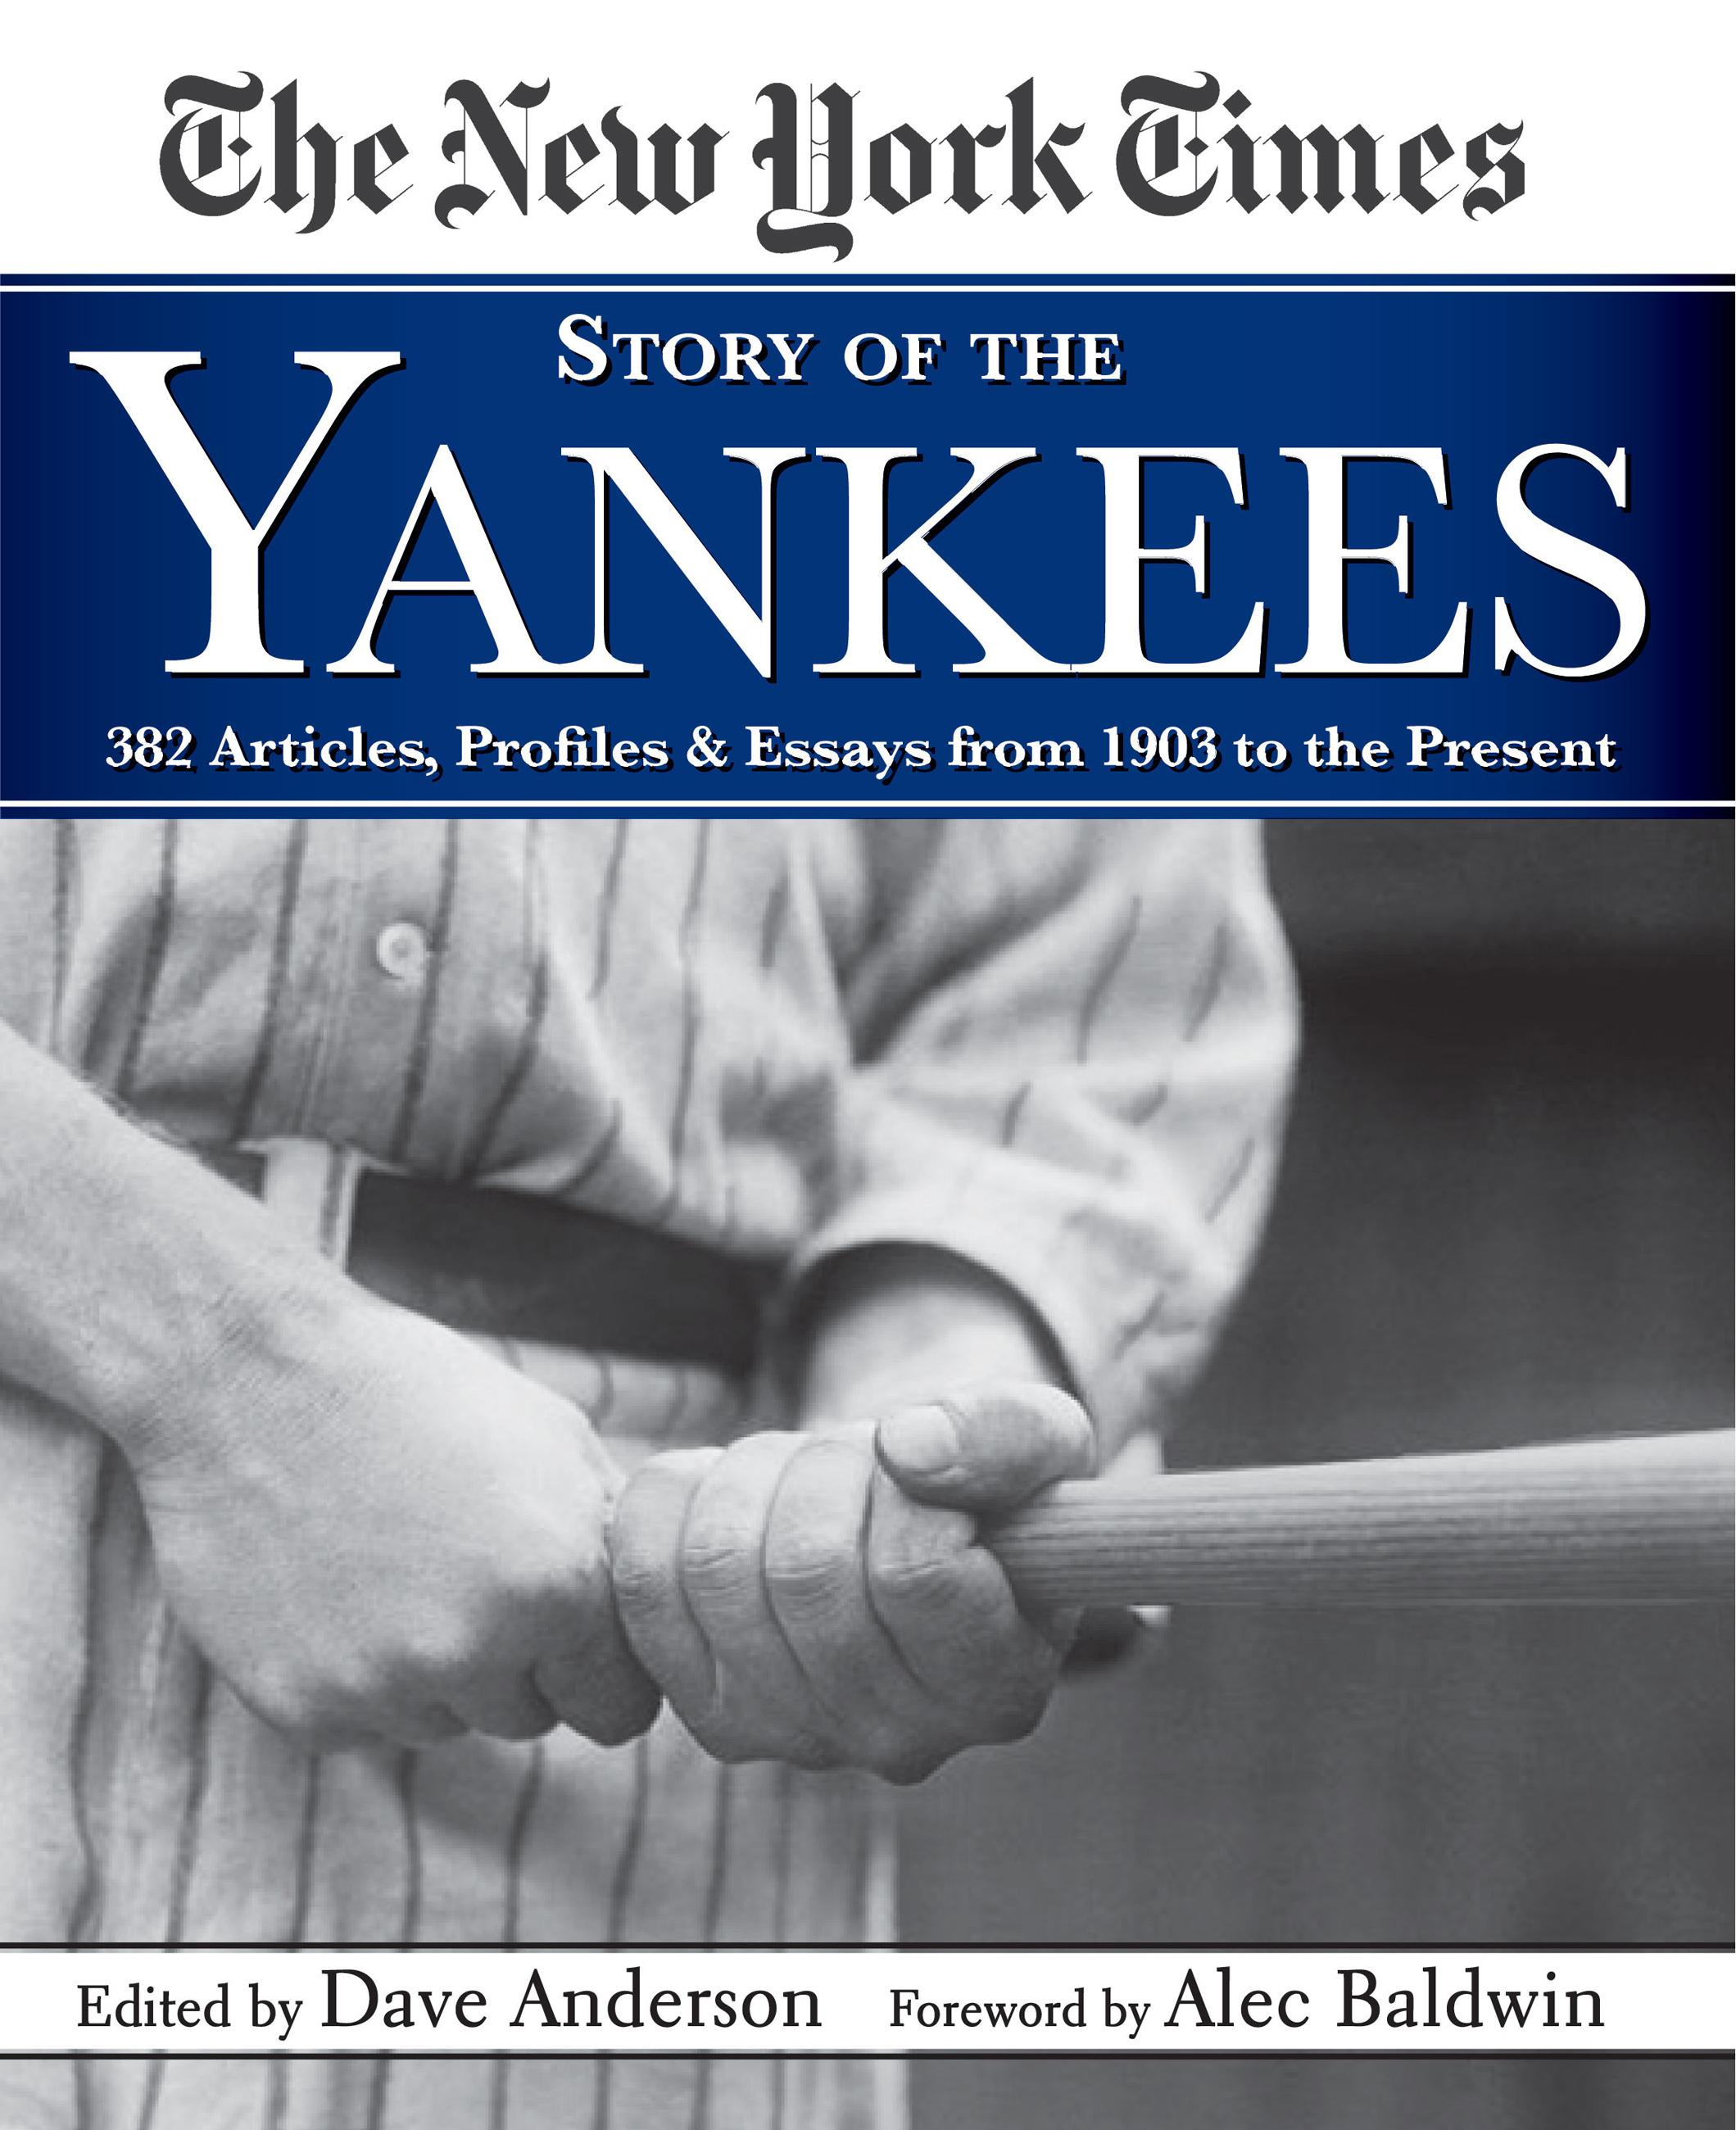 the history of the new york yankees 1922-10-04 writer grantland rice does the announcing as the new york giants-new york yankees baseball world series is broadcast for the first time over radio (wjz & wgy) 1922-10-05 ny yankees and giants play out a controversial 3-3 tie in 10 innings in game 2 of baseball world series at polo grounds, manhattan, ny giants win series, 4-0-1.